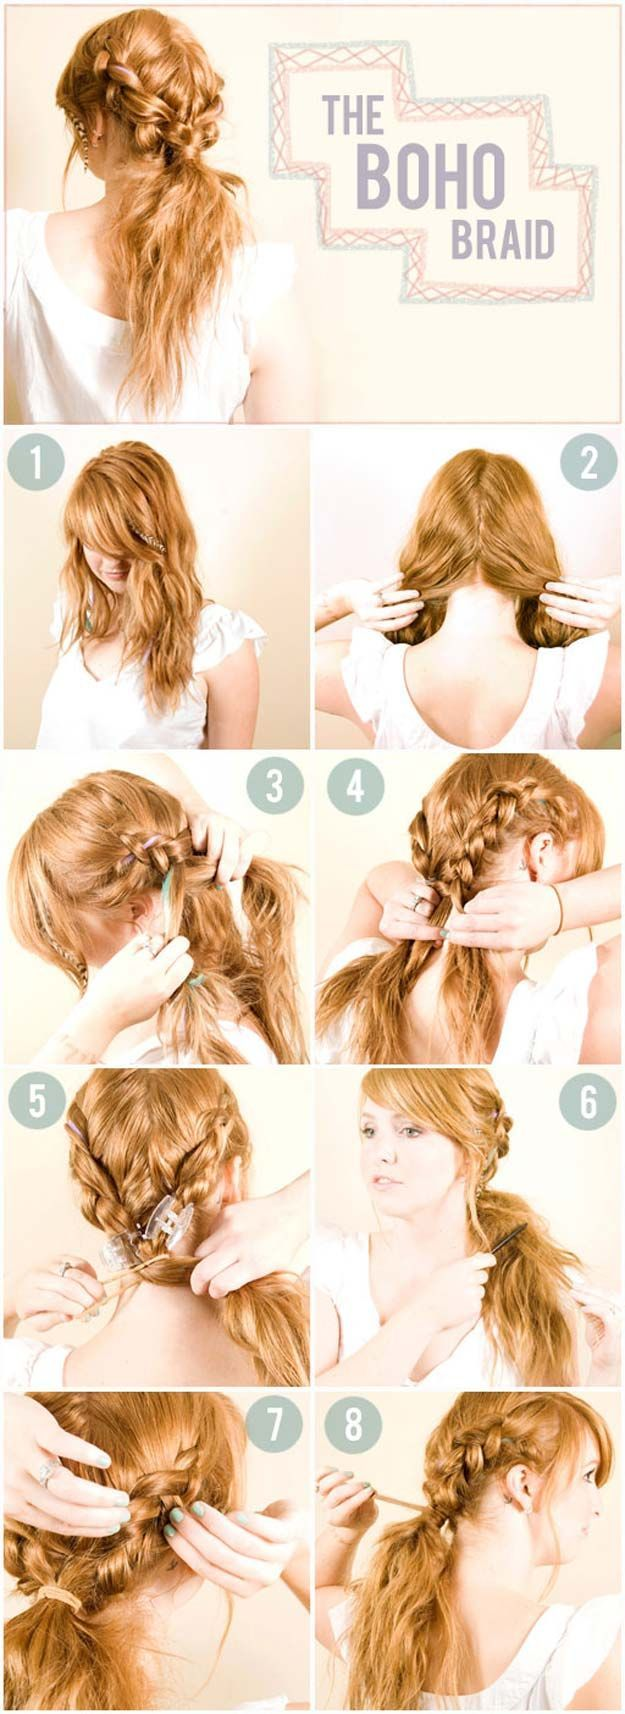 25 beautiful how to braid cornrows ideas on pinterest flower 25 beautiful how to braid cornrows ideas on pinterest flower braid hair cool braid hairstyles and hairstyles for braids ccuart Choice Image